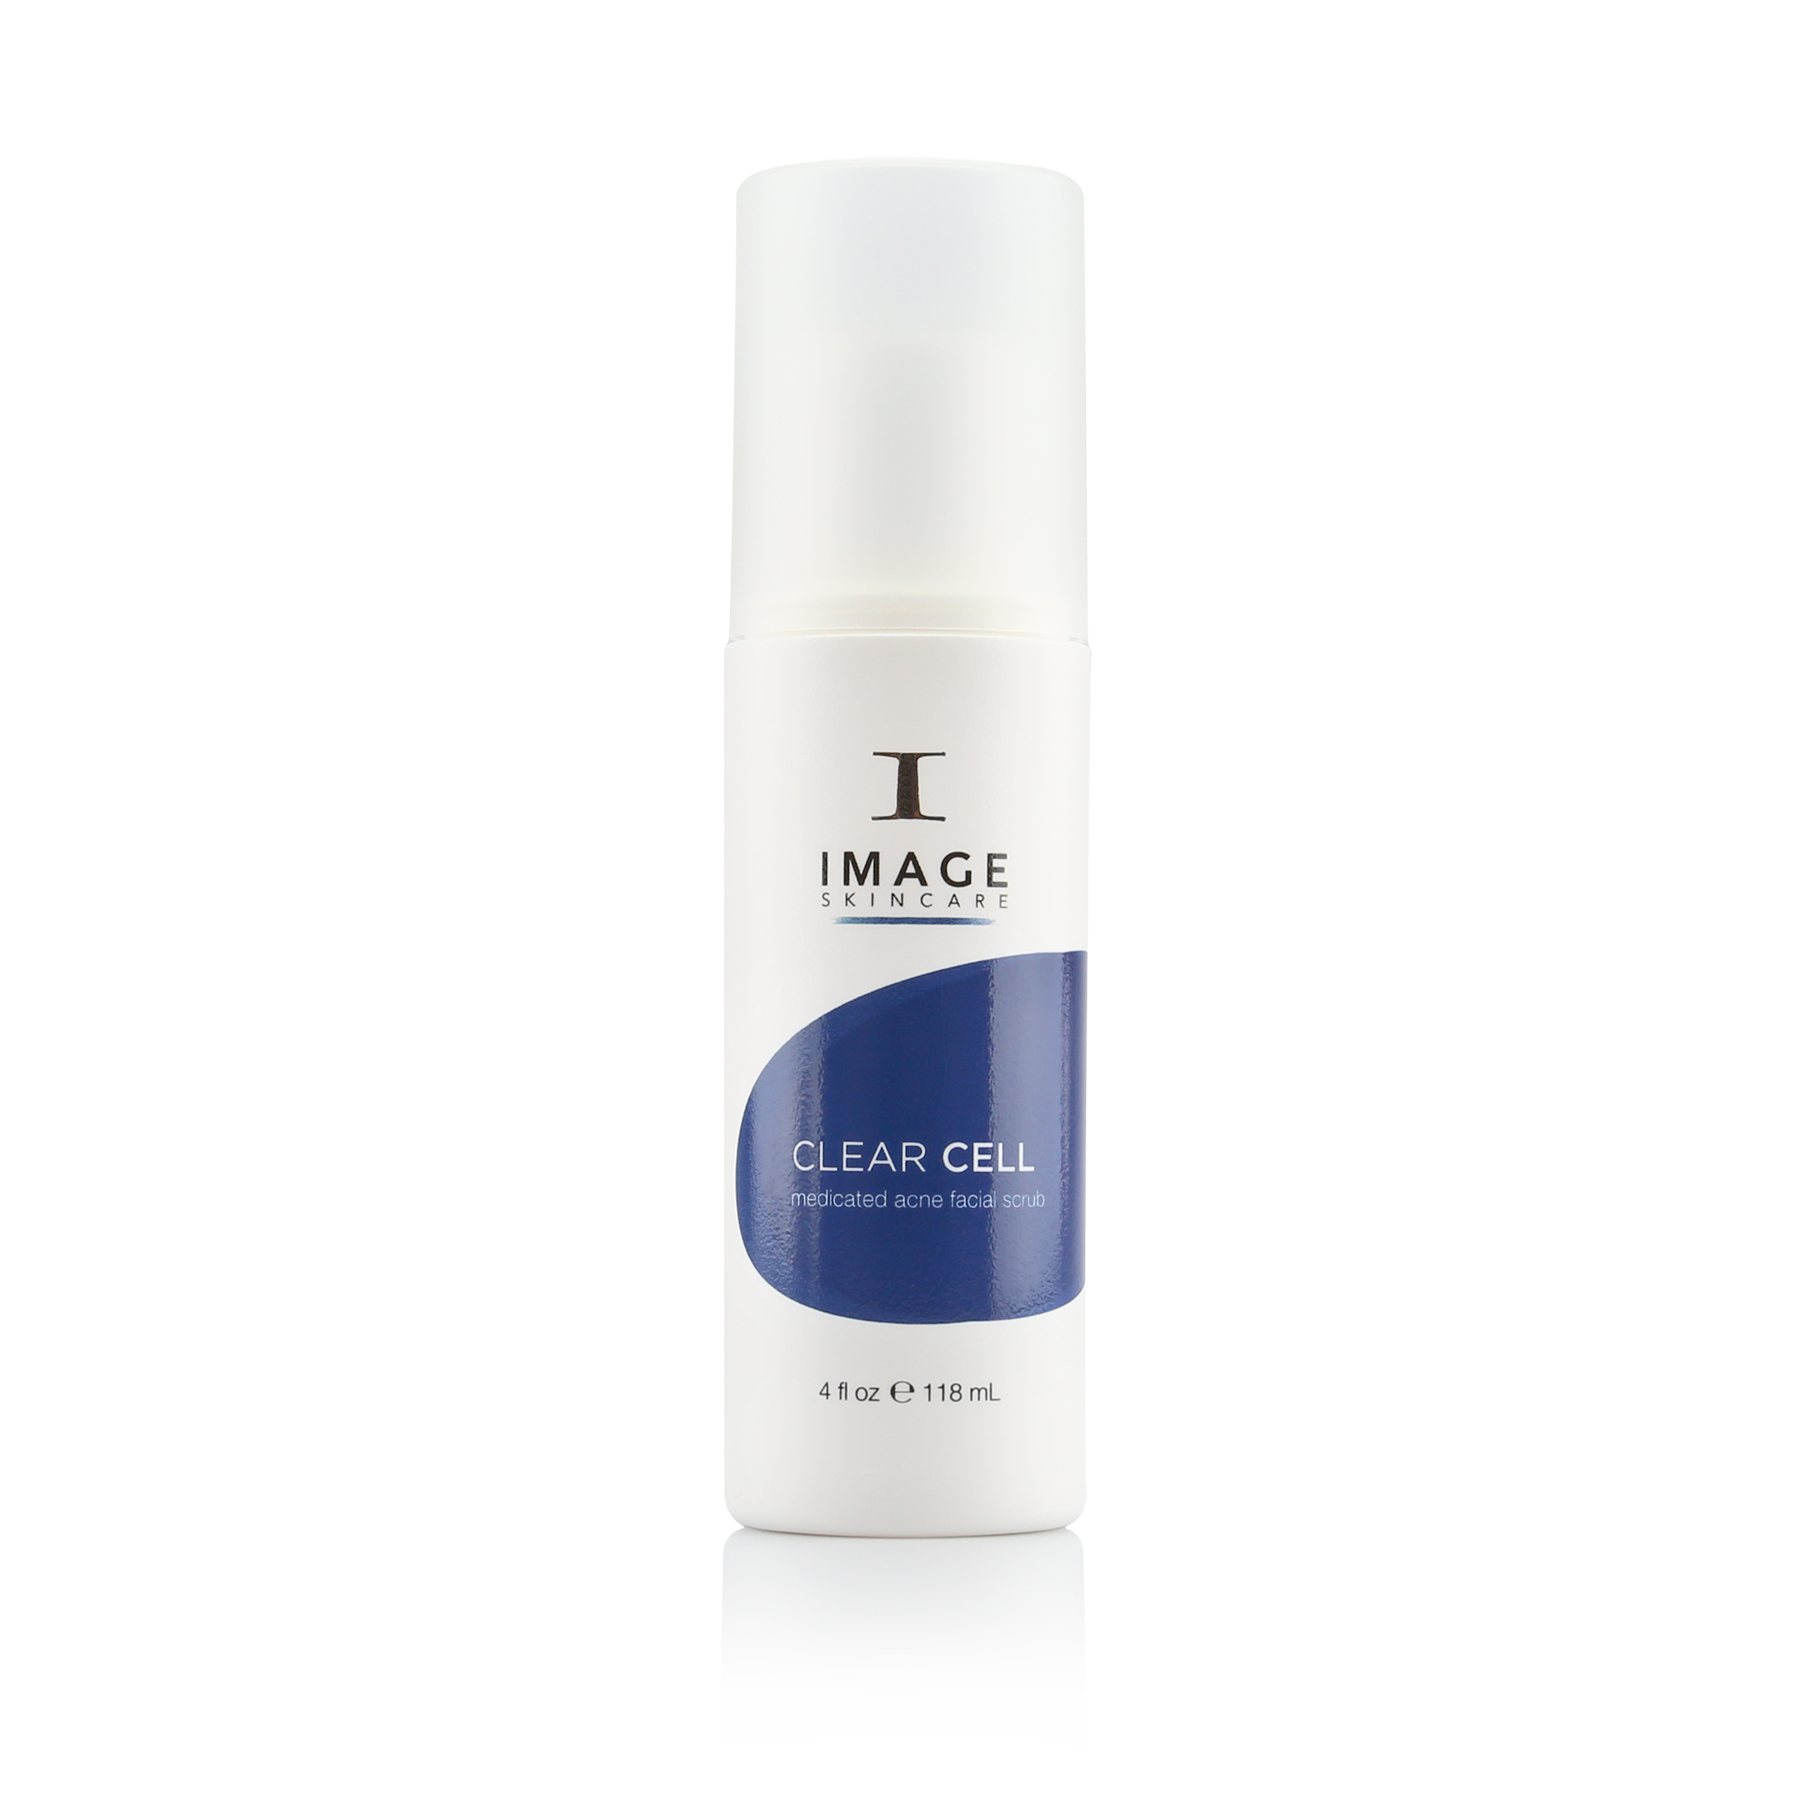 Image Skincare CLEAR CELL Clarifying Scrub